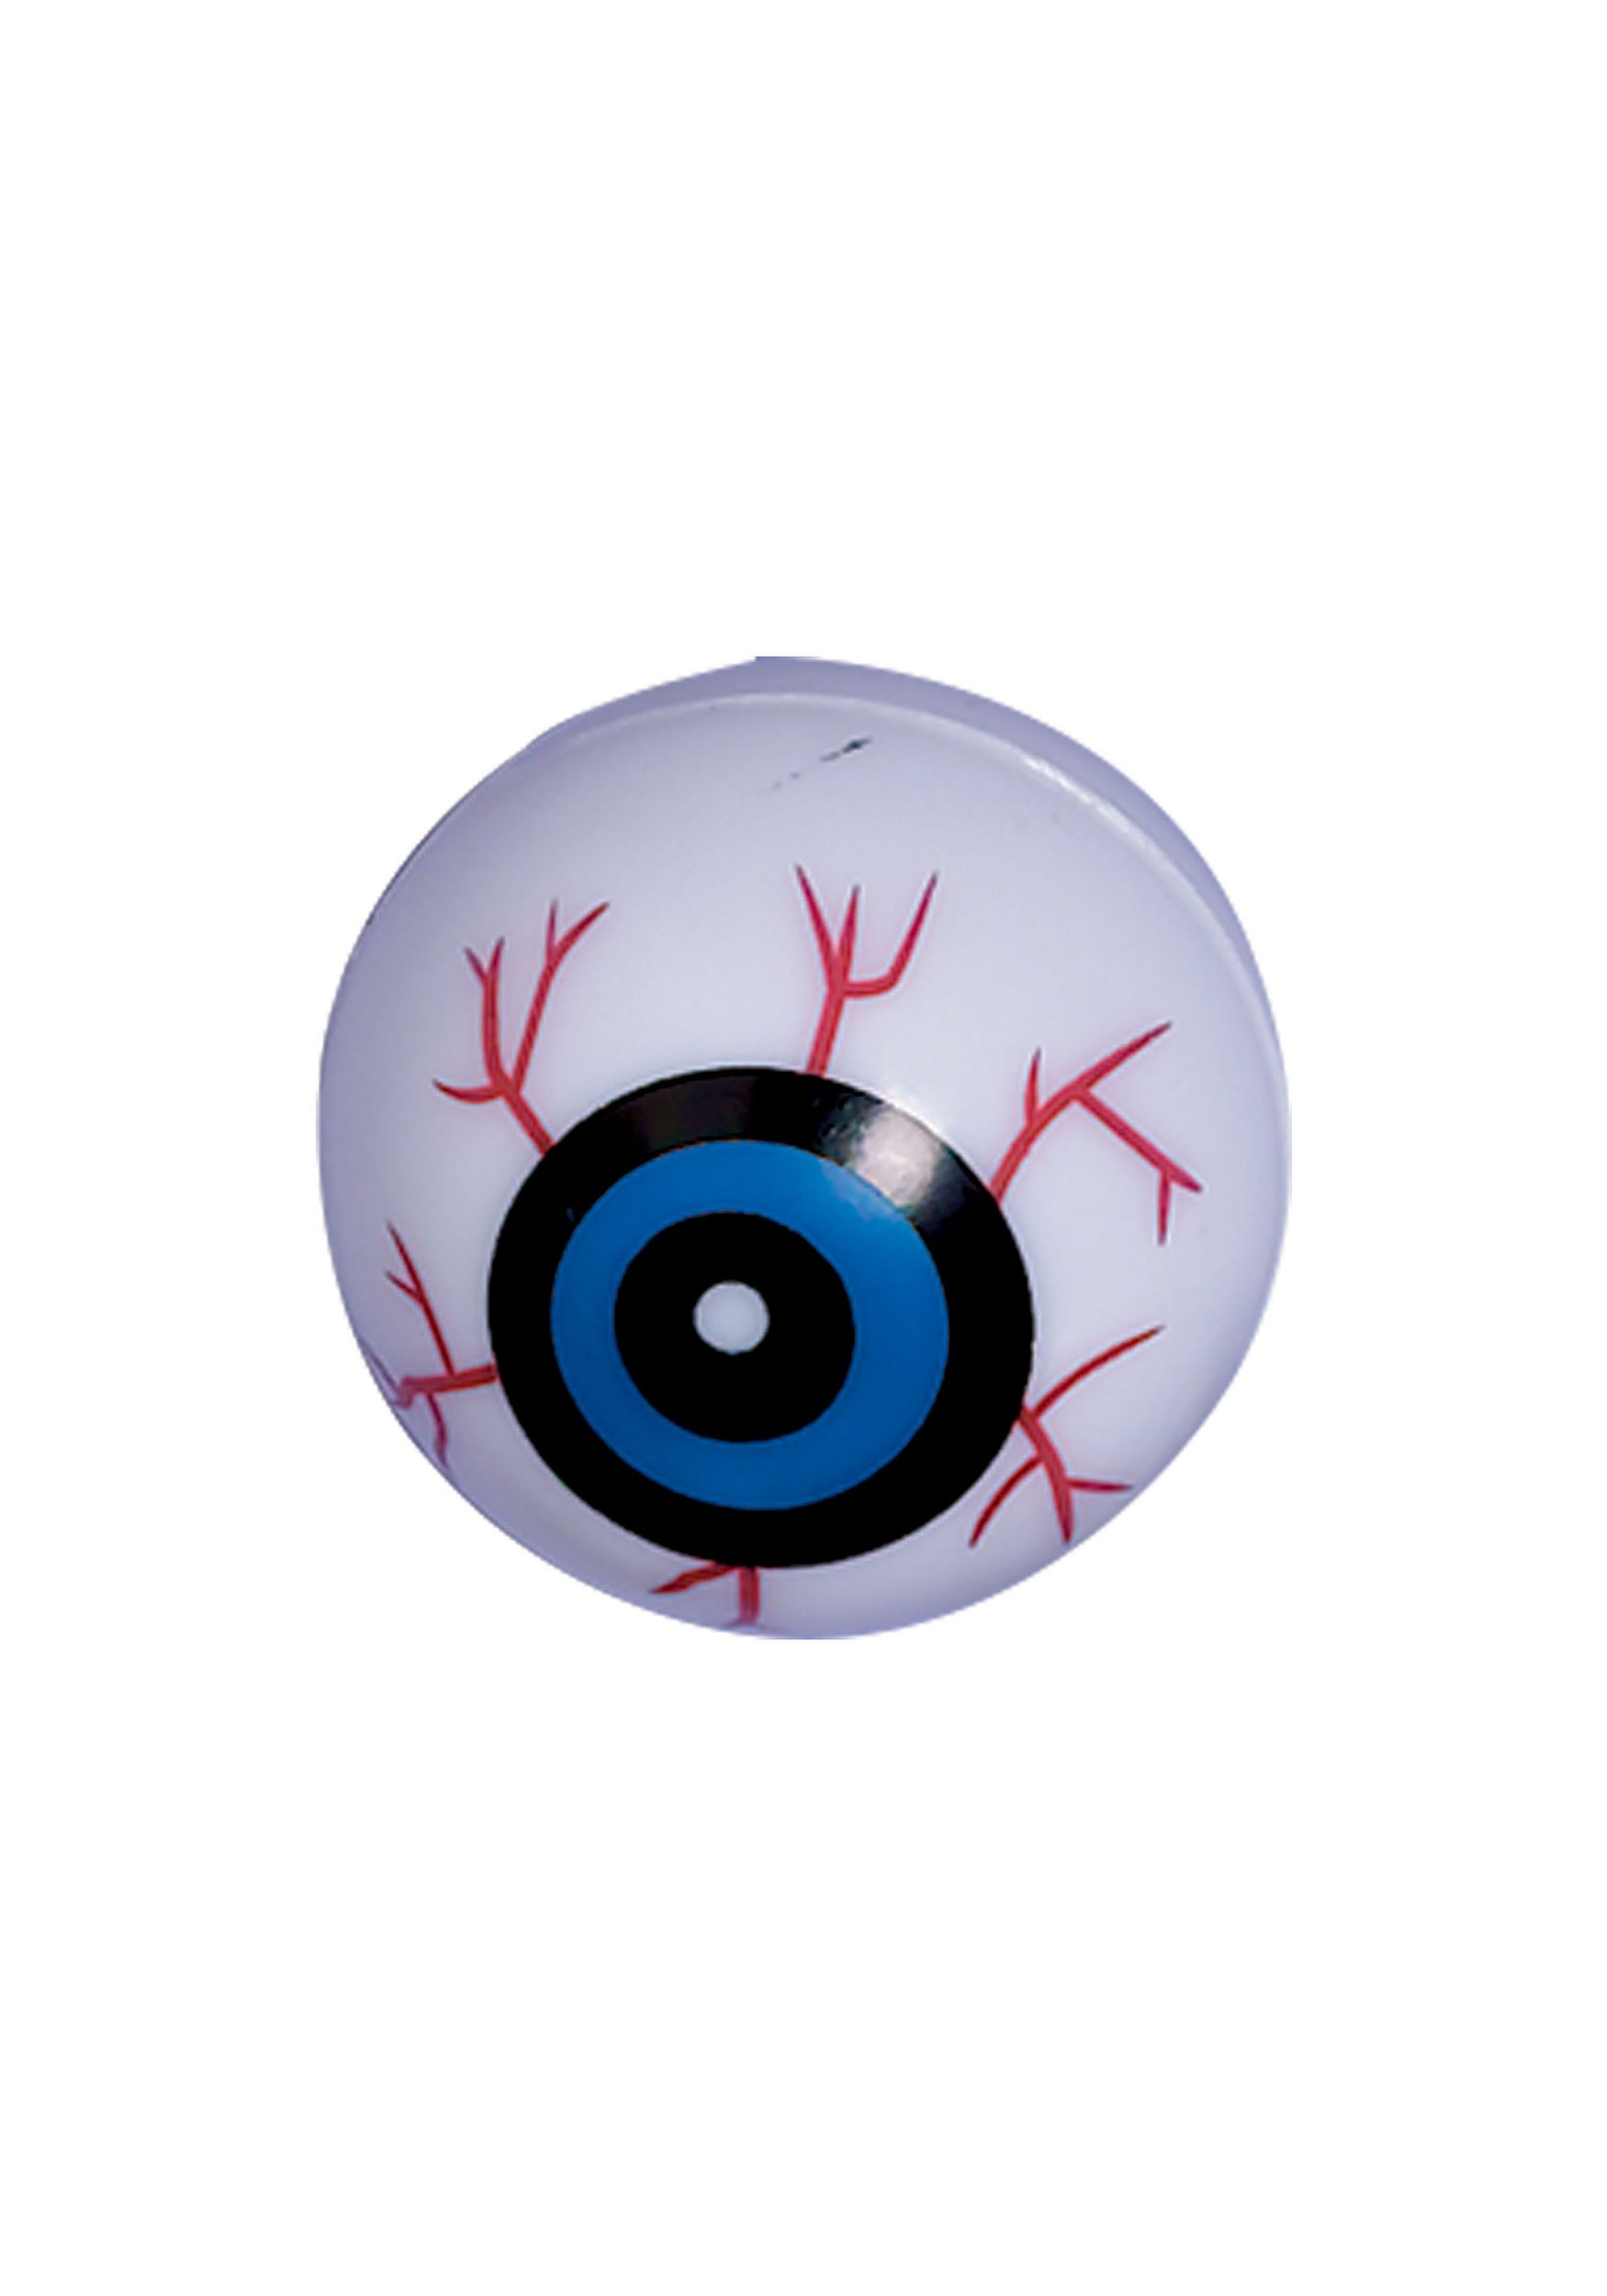 Bag_of_Plastic_Eyeballs_(10_per_bag)